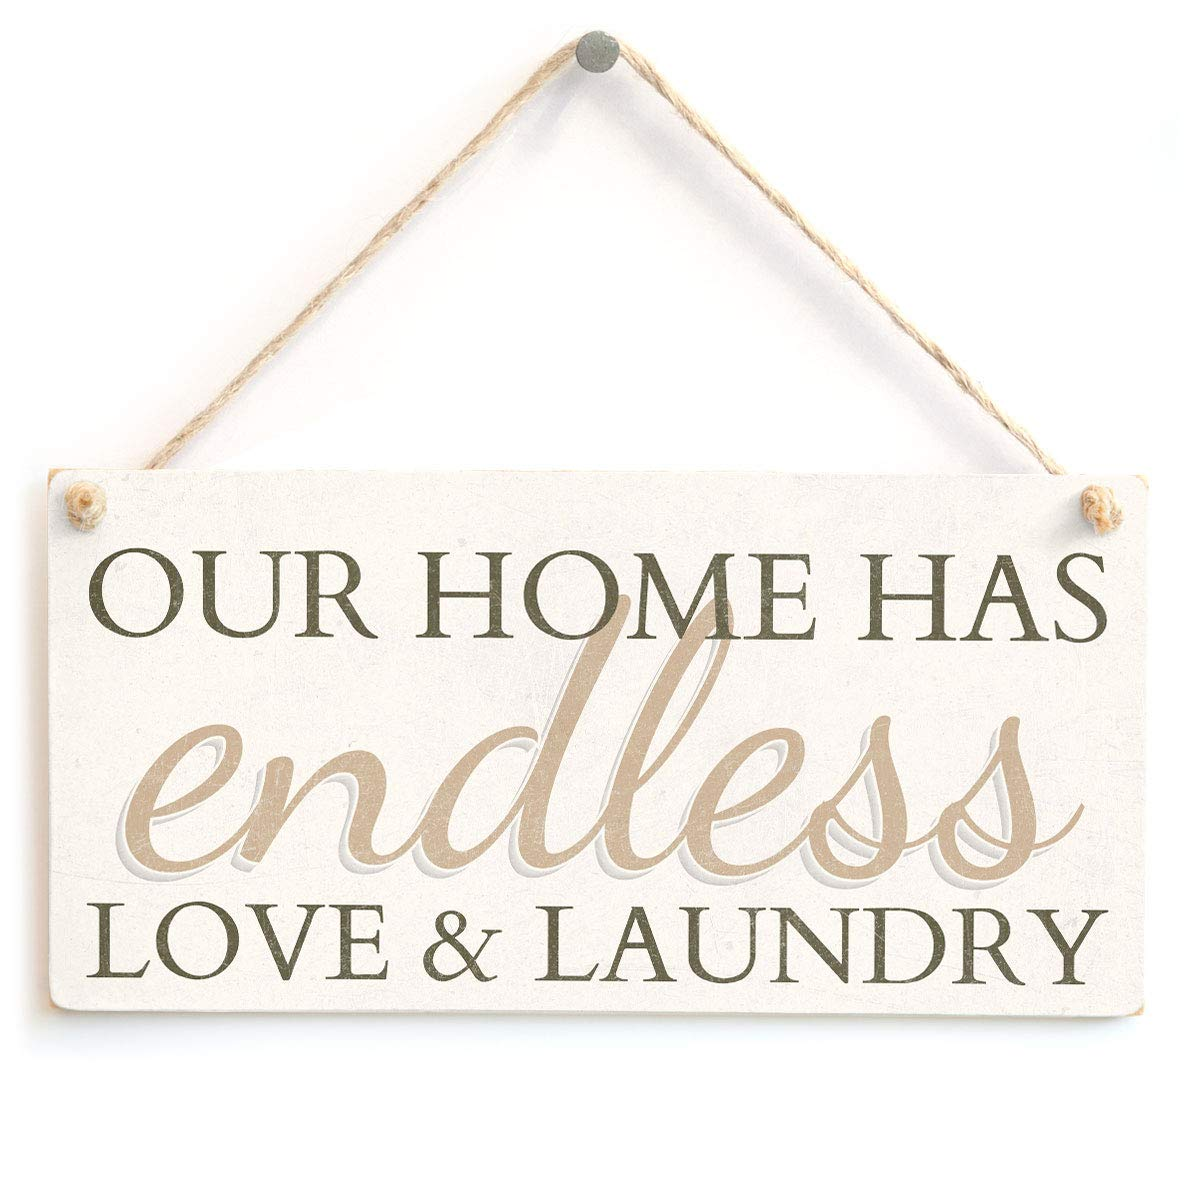 Mr.sign Endless Love & Laundry Cartel de Pared Madera Placa ...